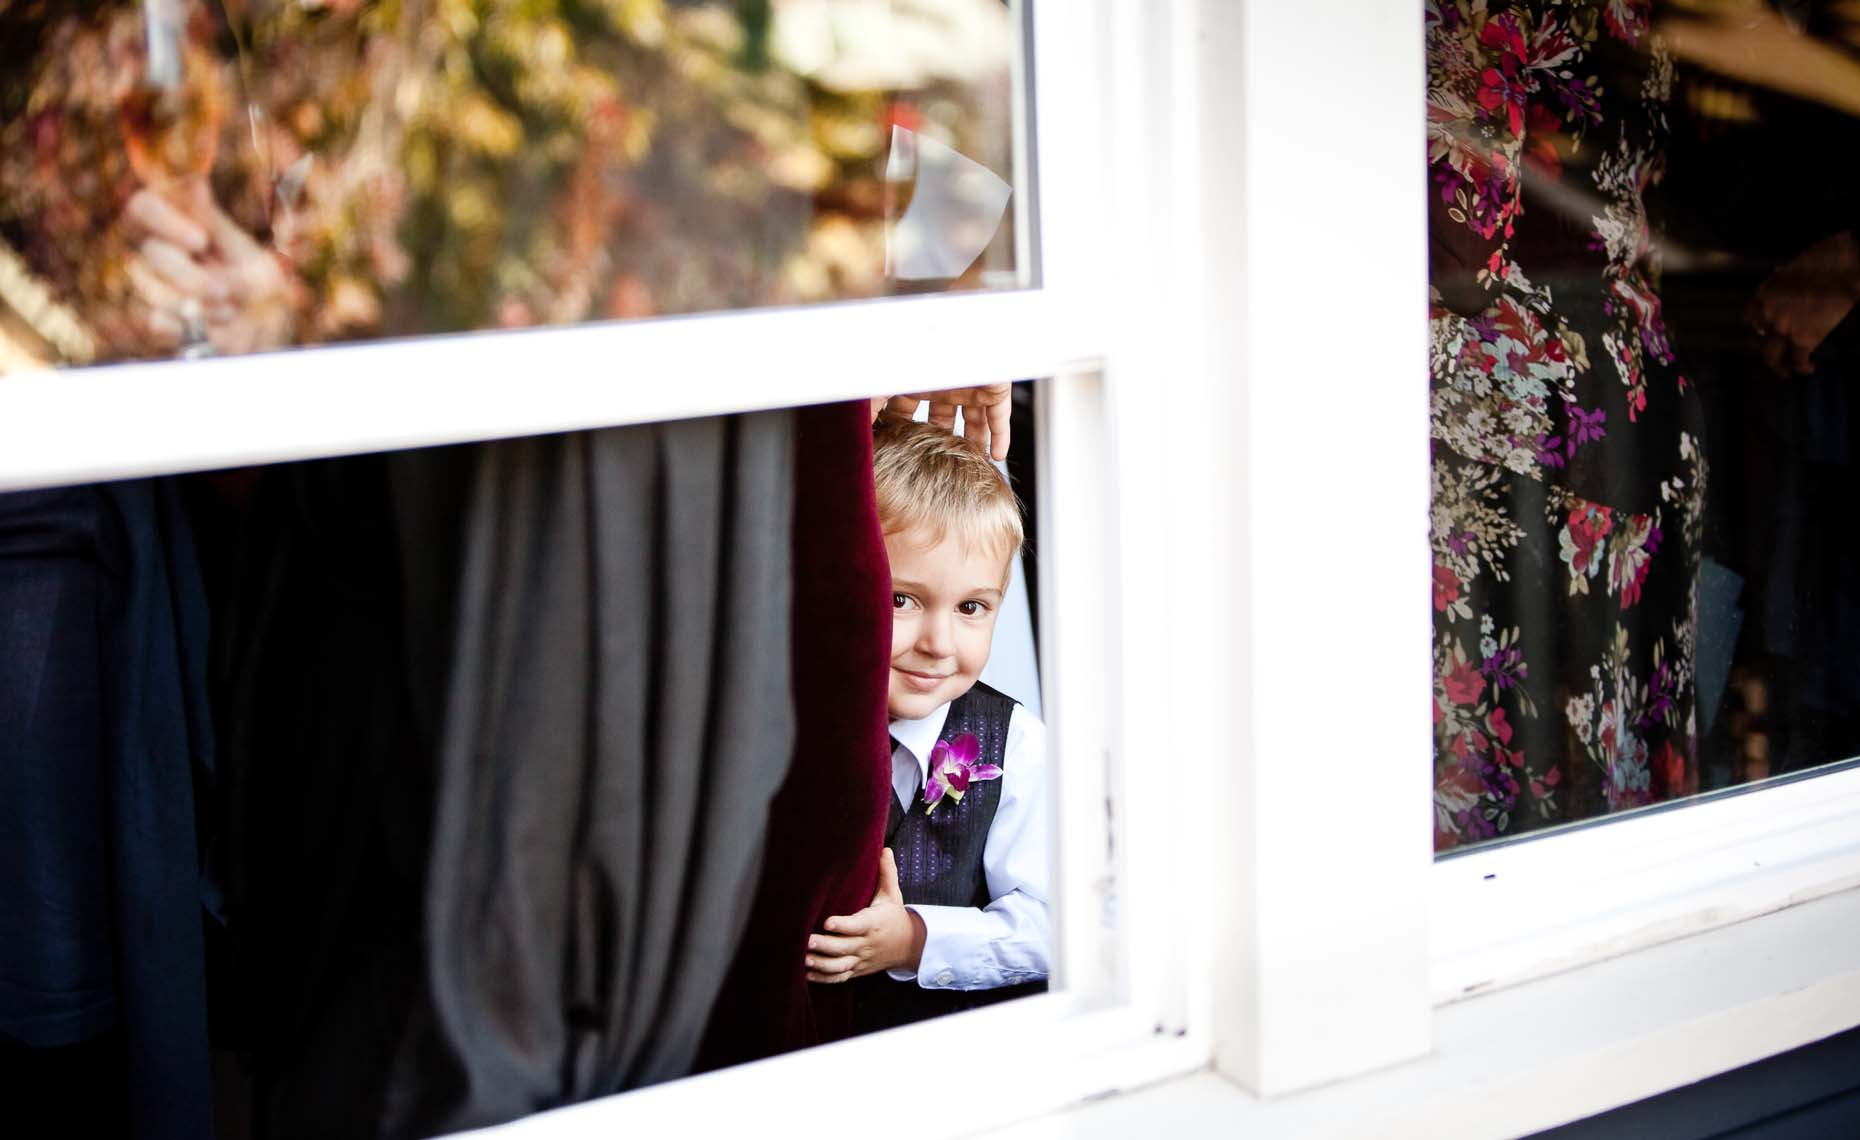 Boy at vancouver wedding peeks at camera